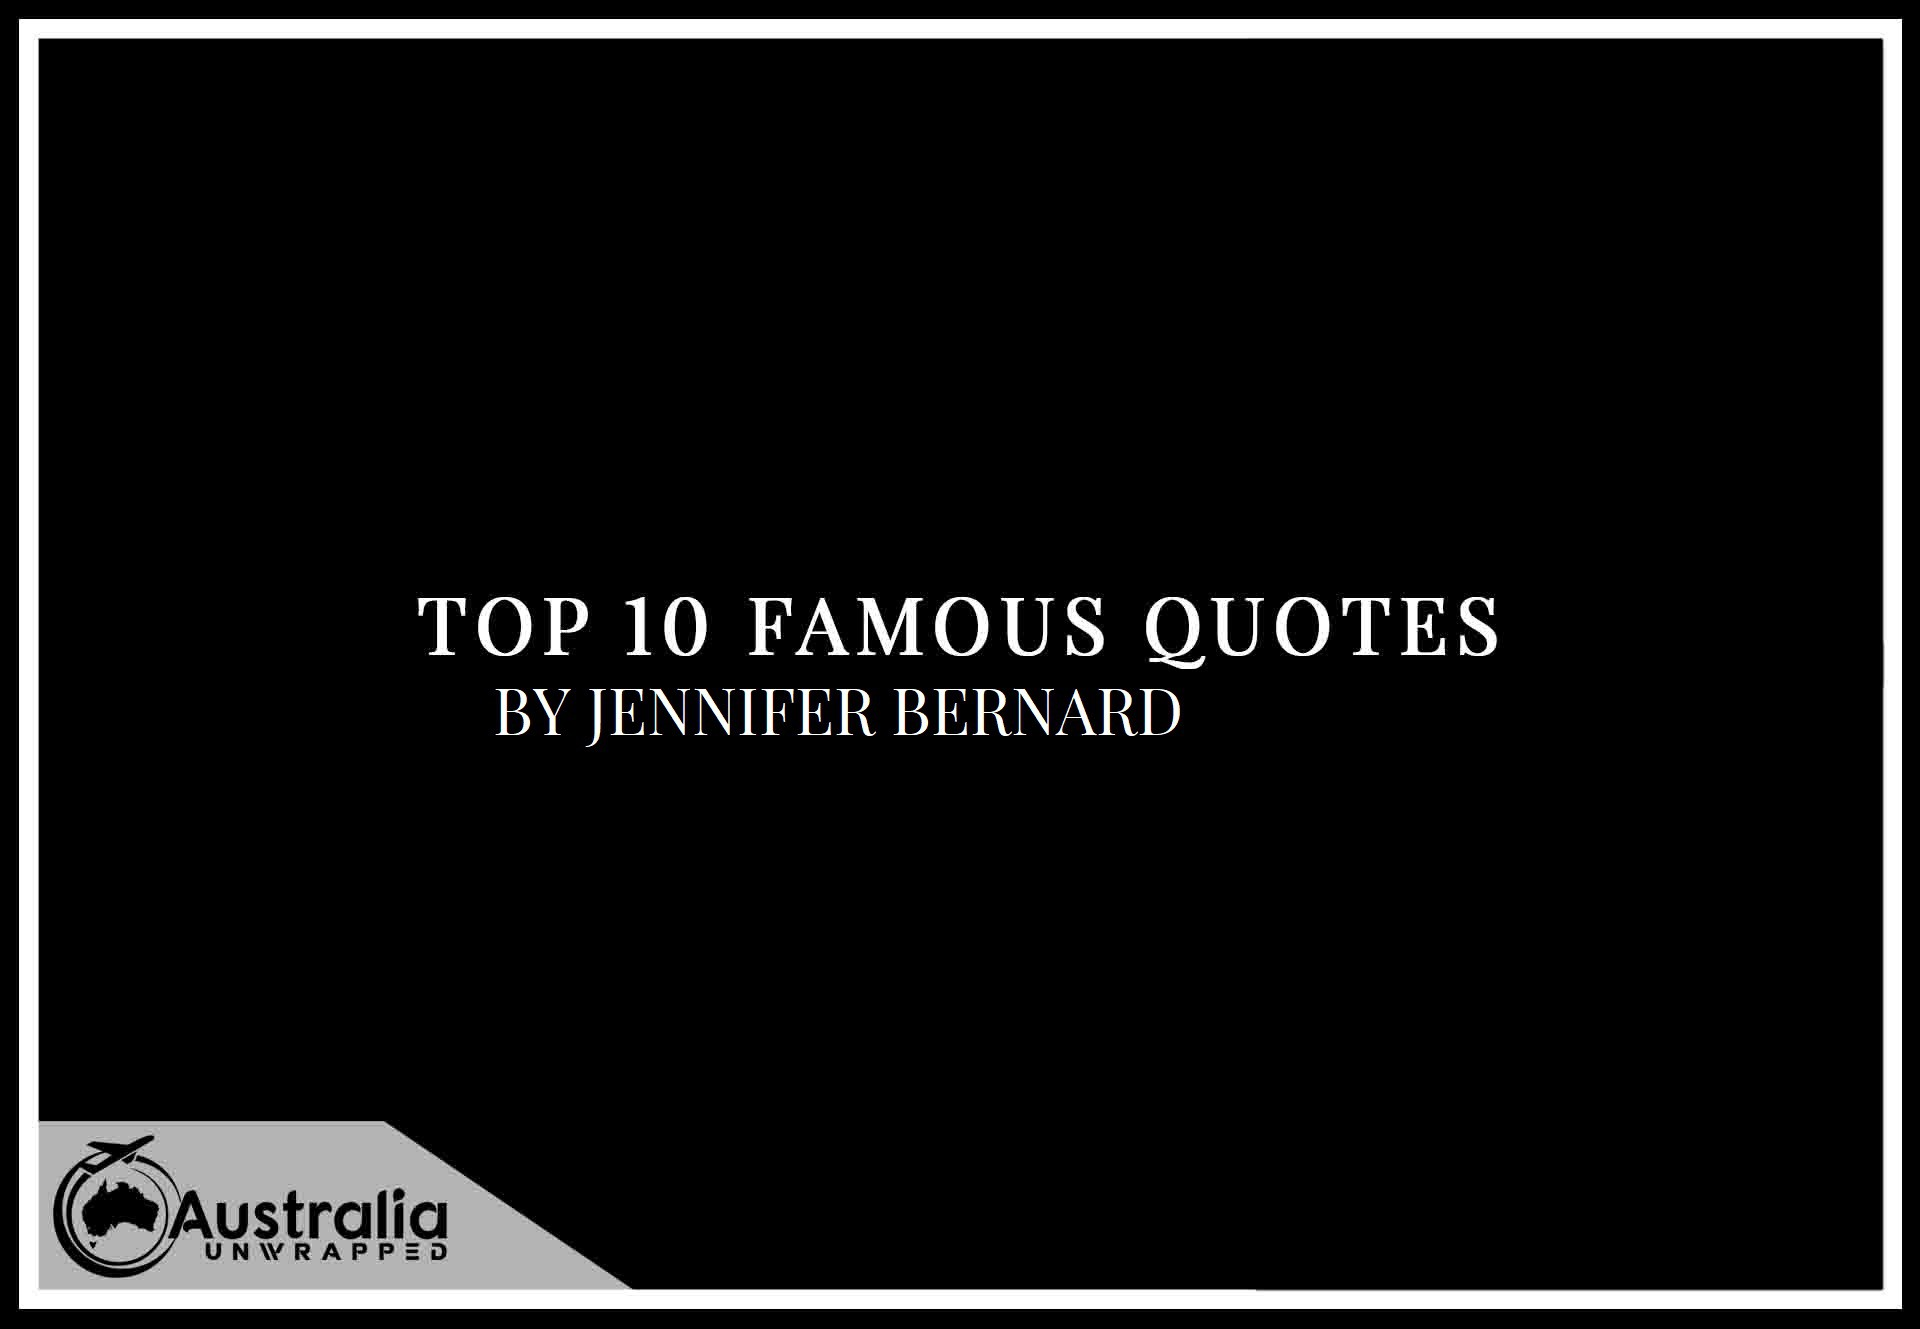 Top 10 Famous Quotes by Author Jennifer Bernard